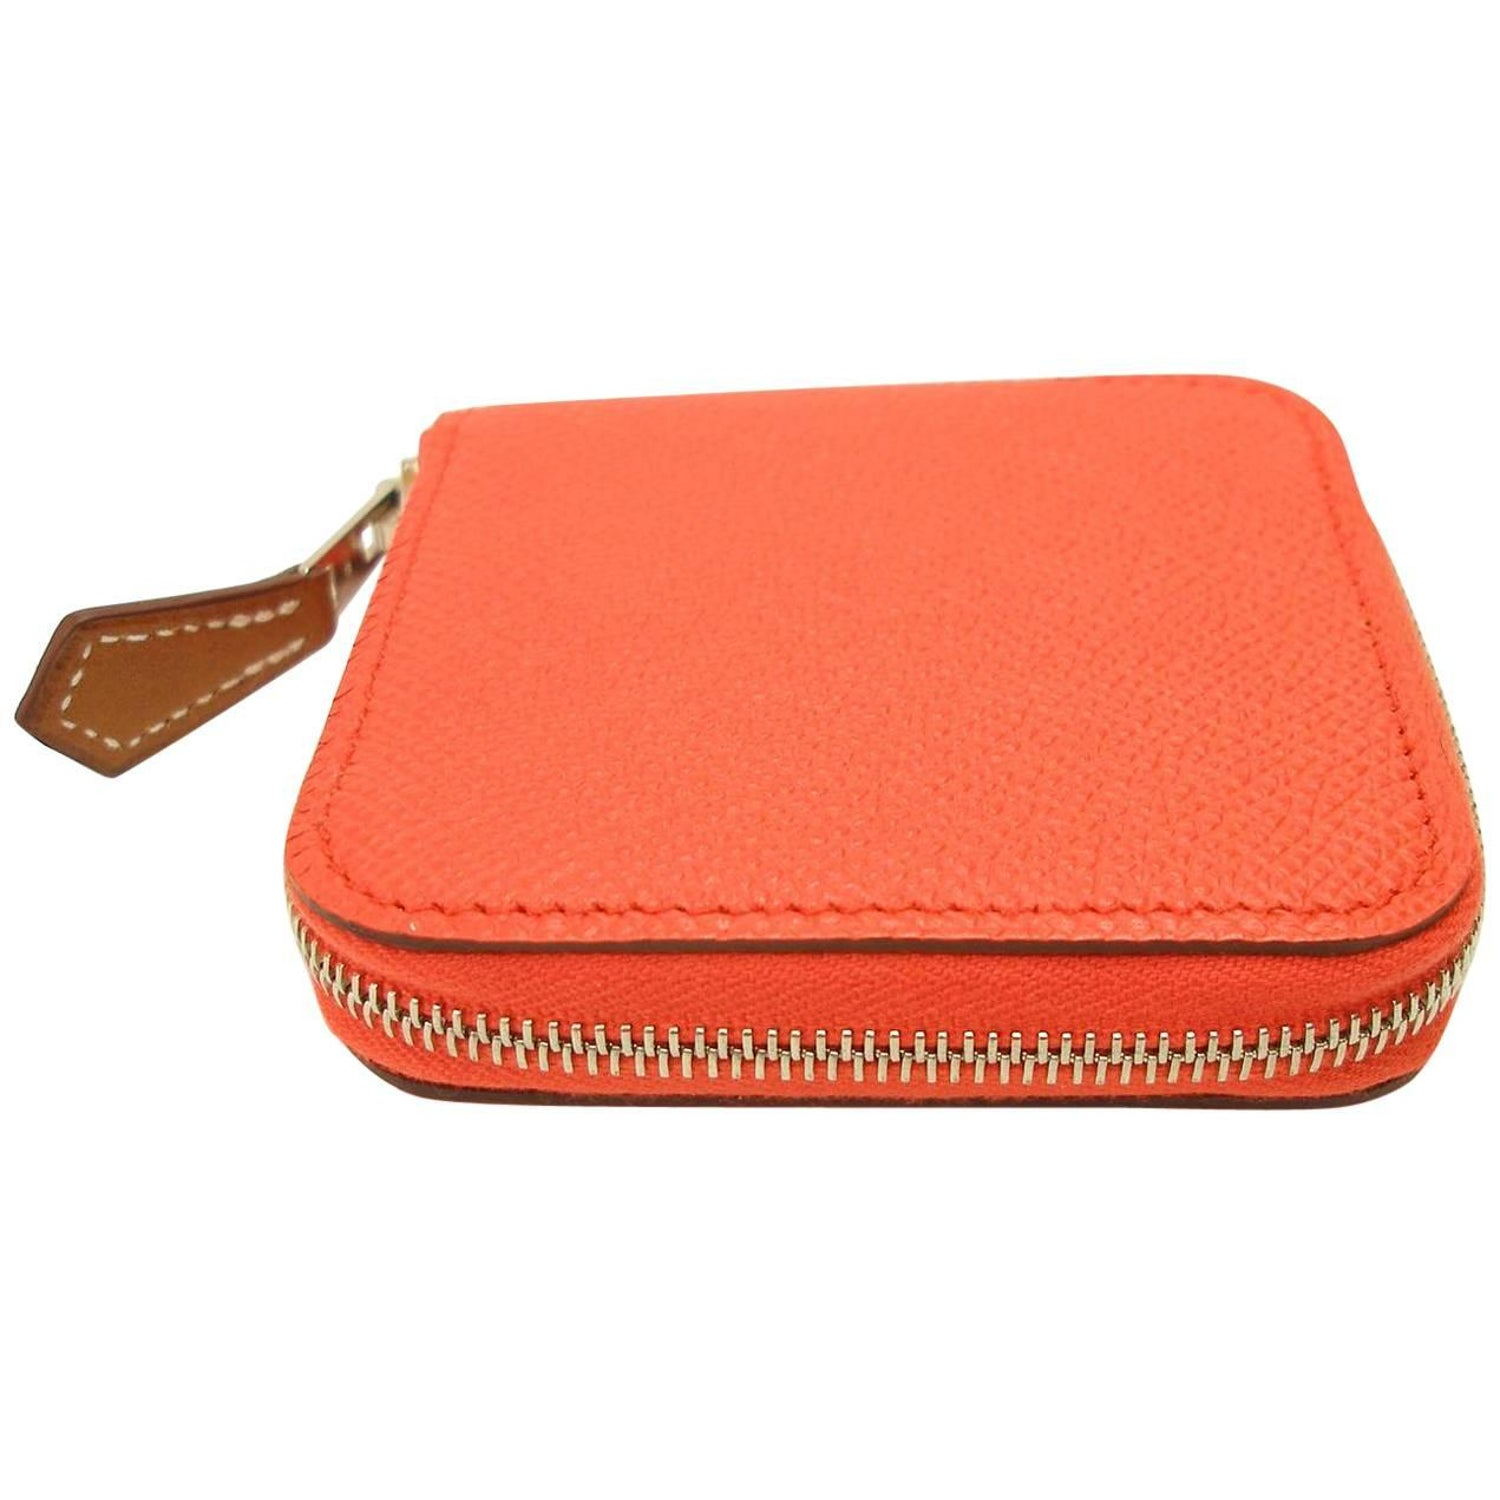 f964b3e9d3 Small Change Coin Purse Hermés silk in Etriers 654 Orange Poppy   Brand New  at 1stdibs